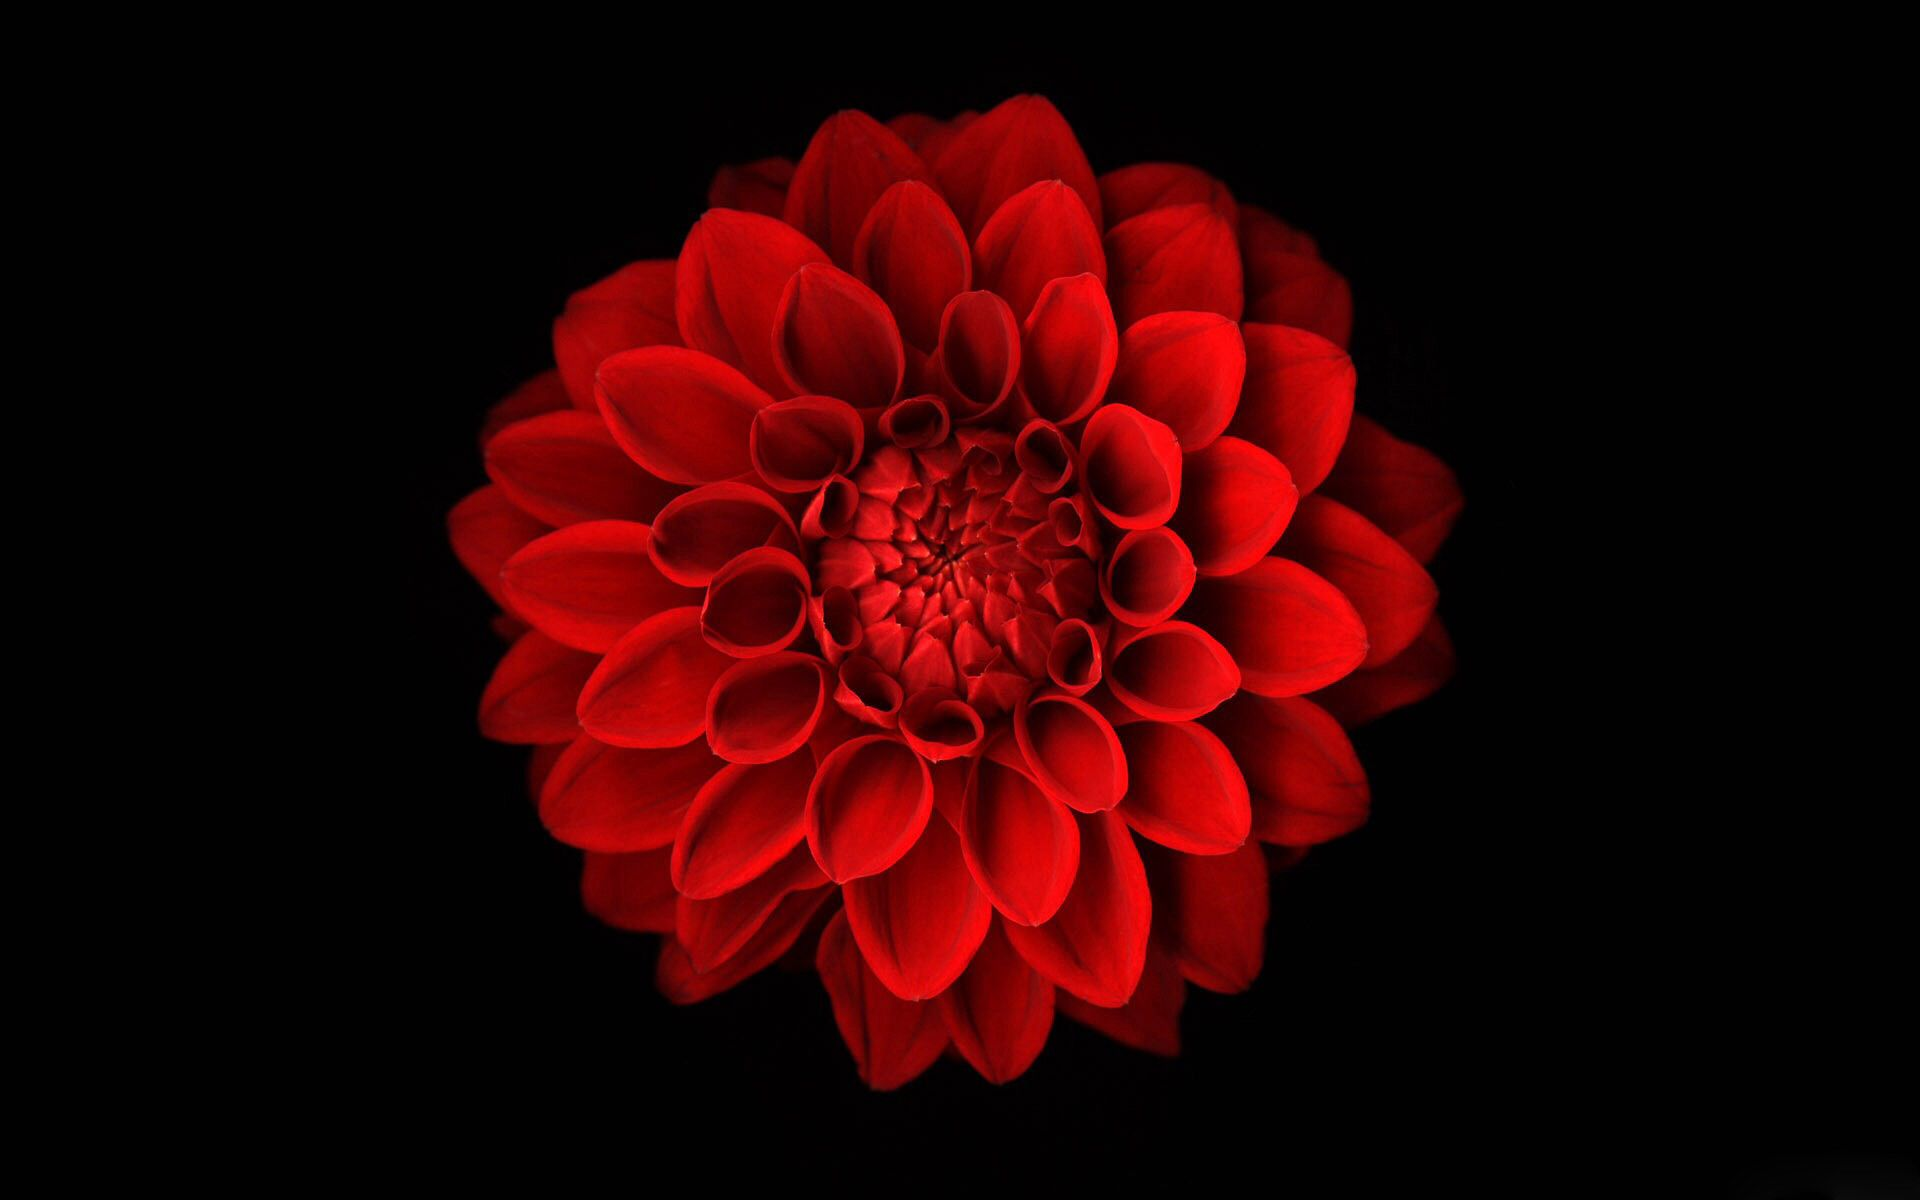 Red Flower On A Black Background